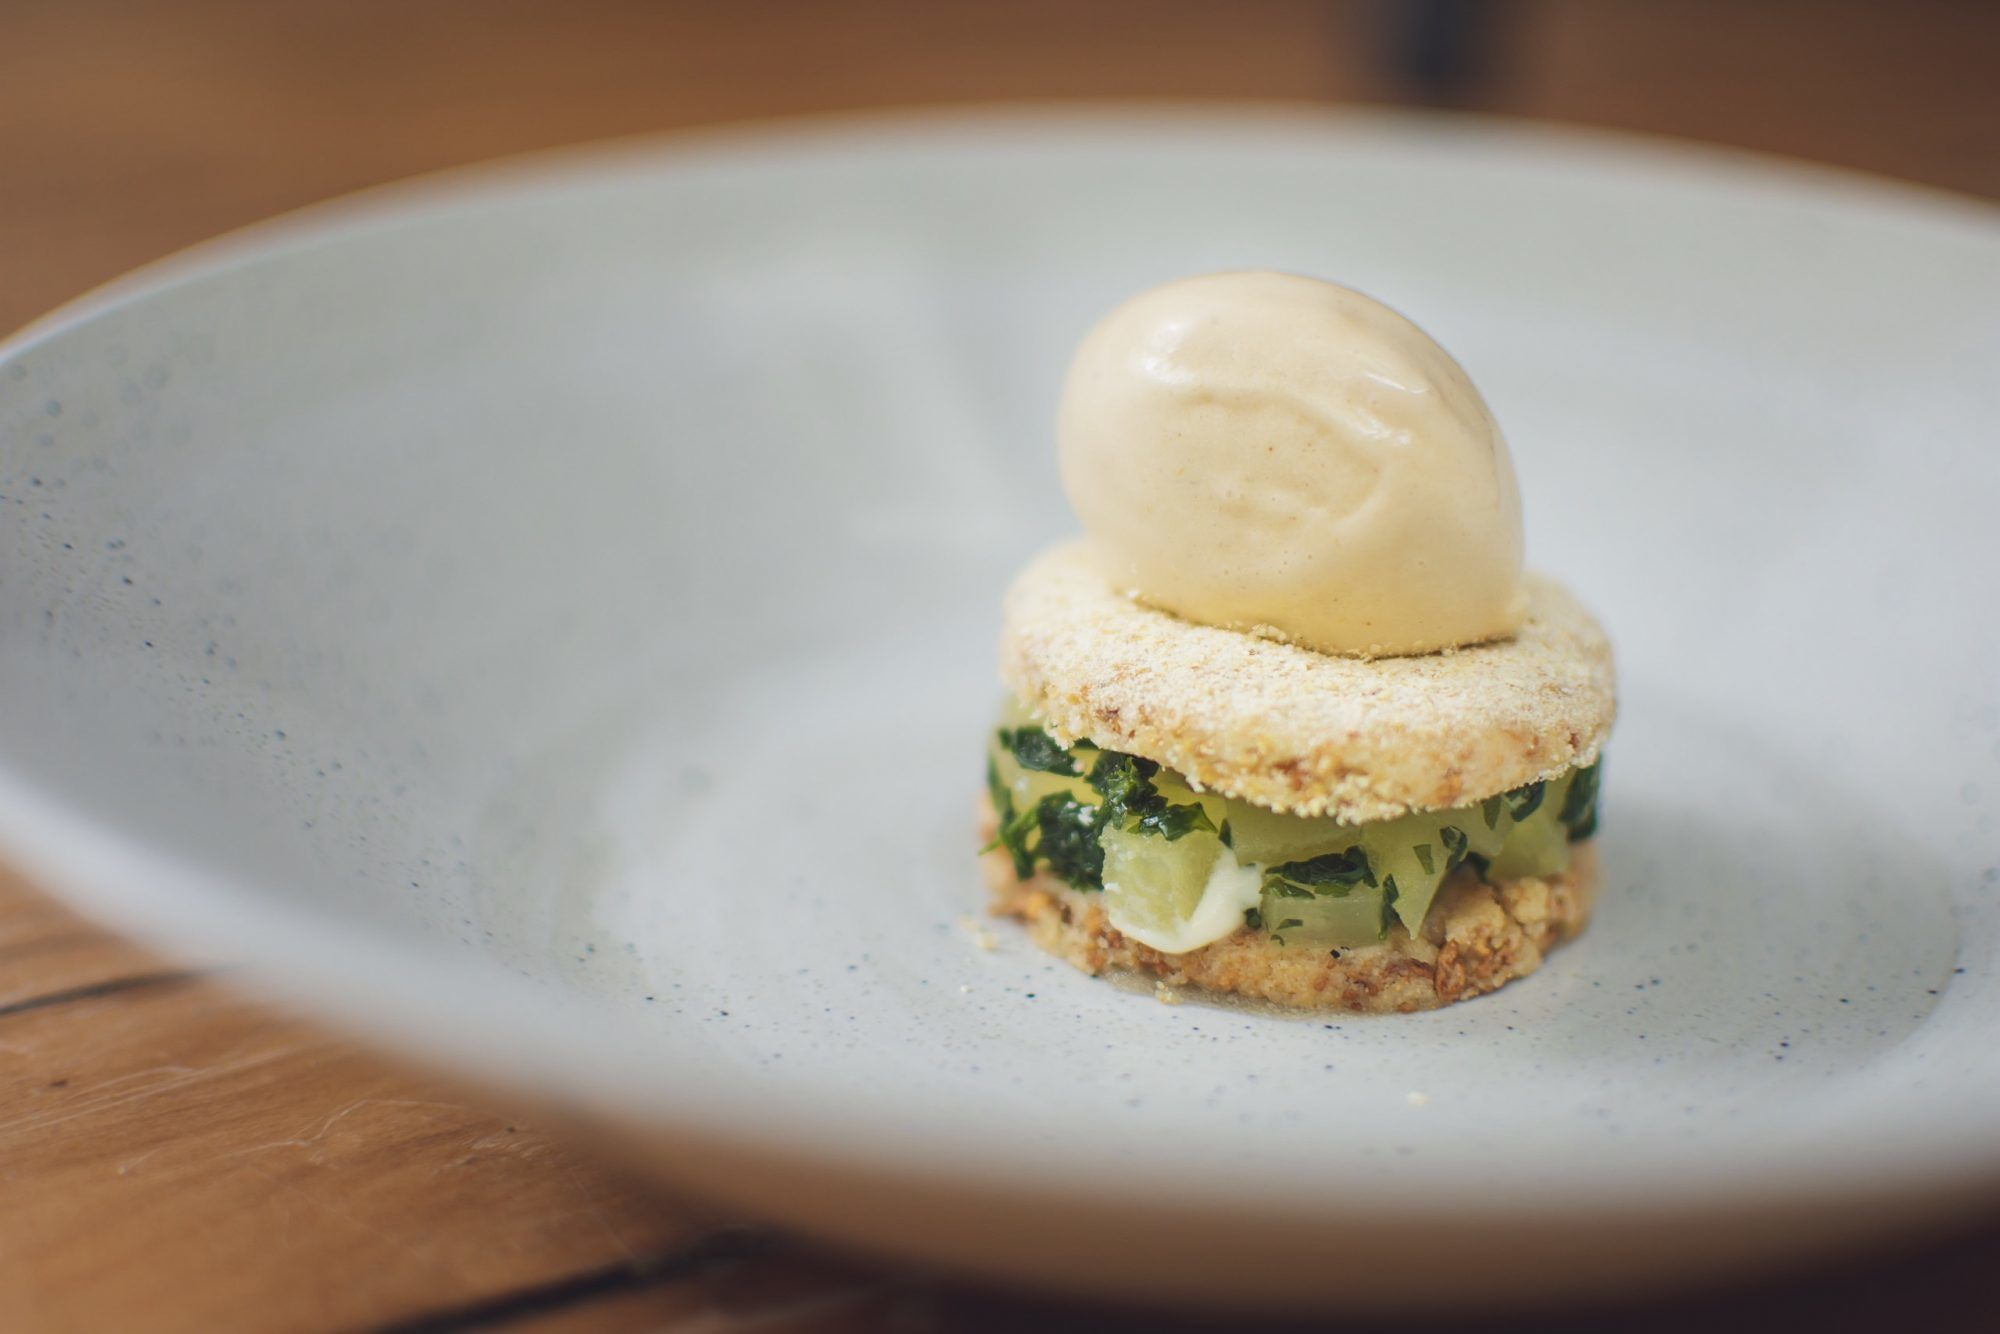 Celeriac shortbread, apple & elderflower chutney, celeriac ice cream